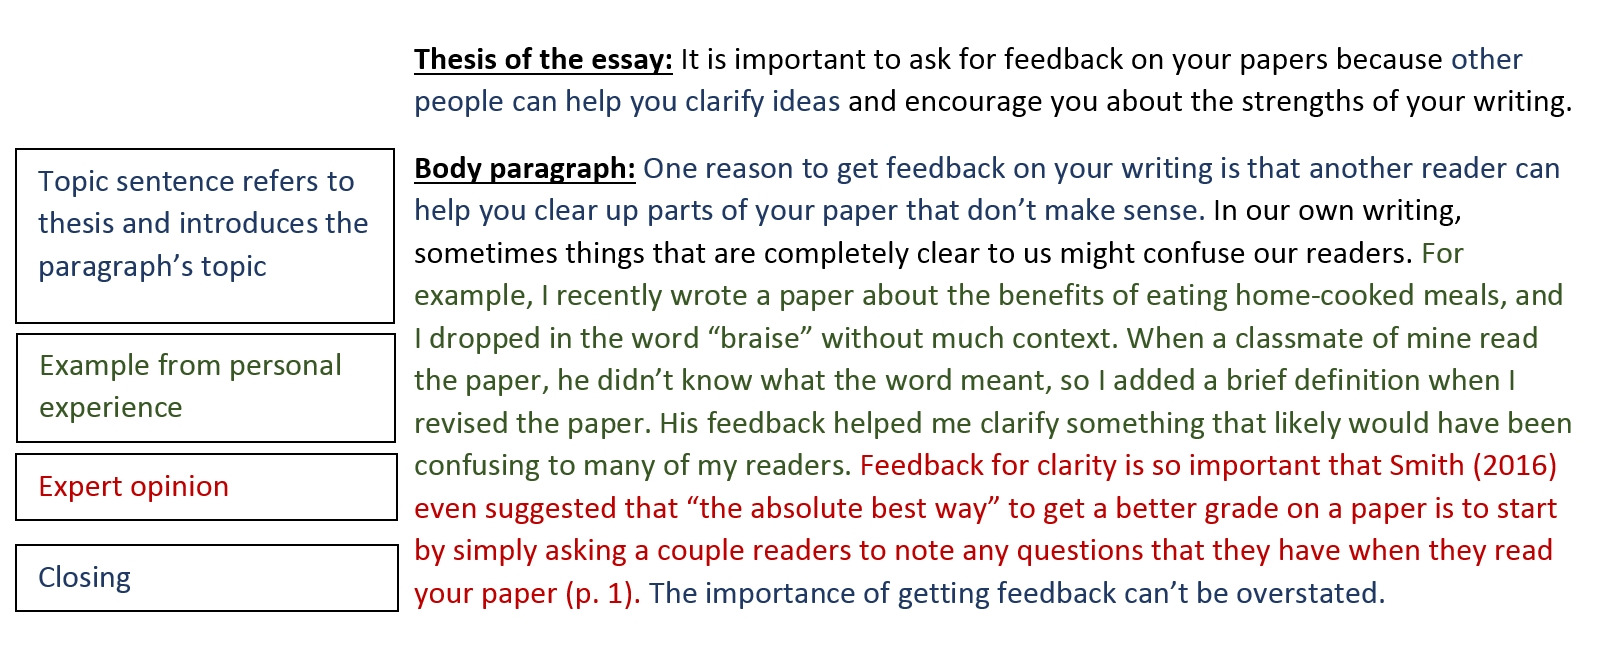 023 Mla Research Paper Introduction Paragraph Body Paragraphs Writing Your Guides At Eastern With Regard To Rare Full